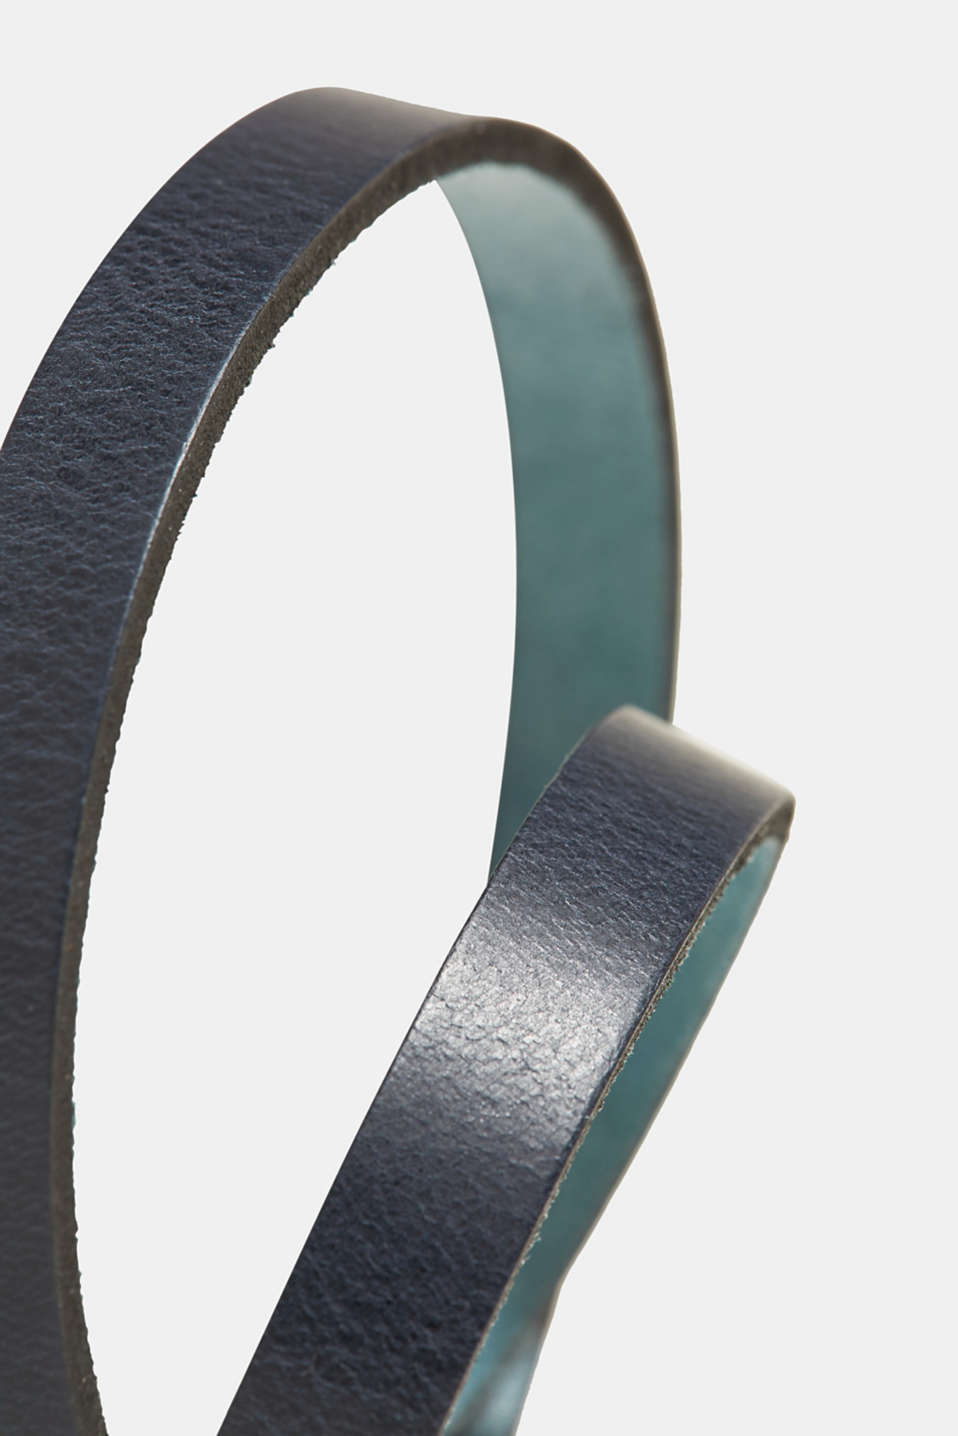 Narrow belt with a metal buckle